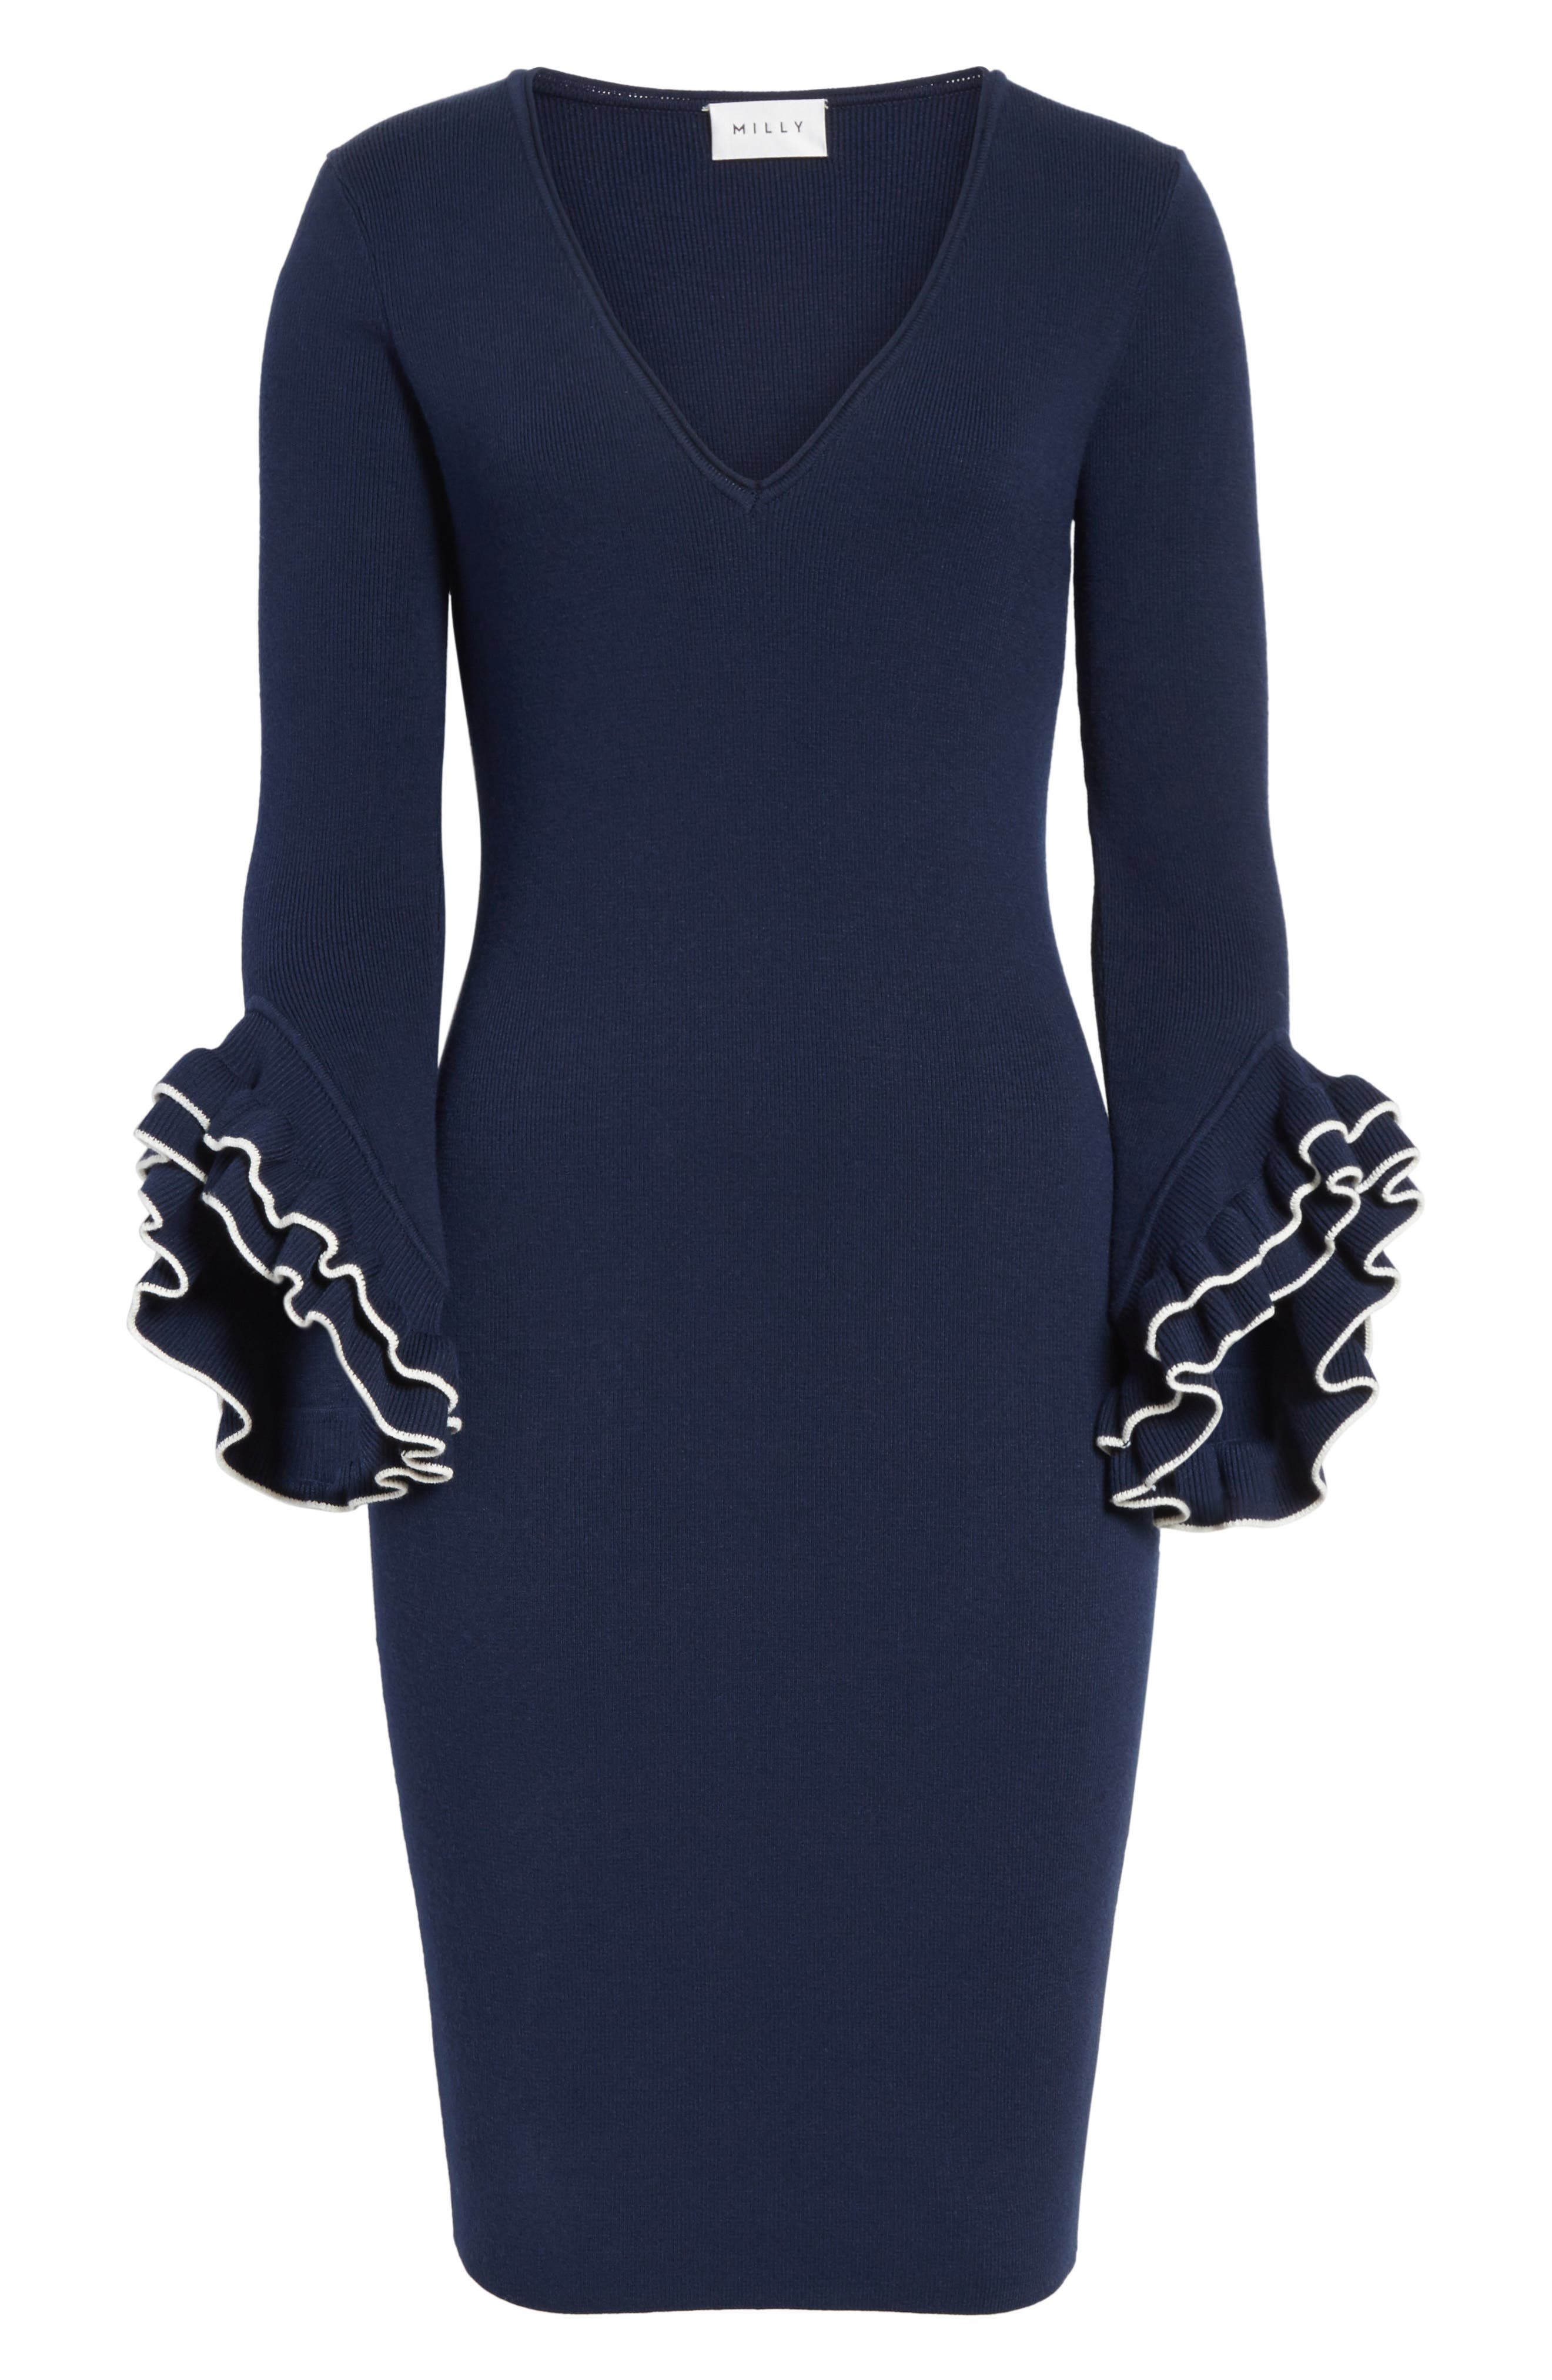 Ruffle Sleeve Sheath Dress,                             Alternate thumbnail 6, color,                             473